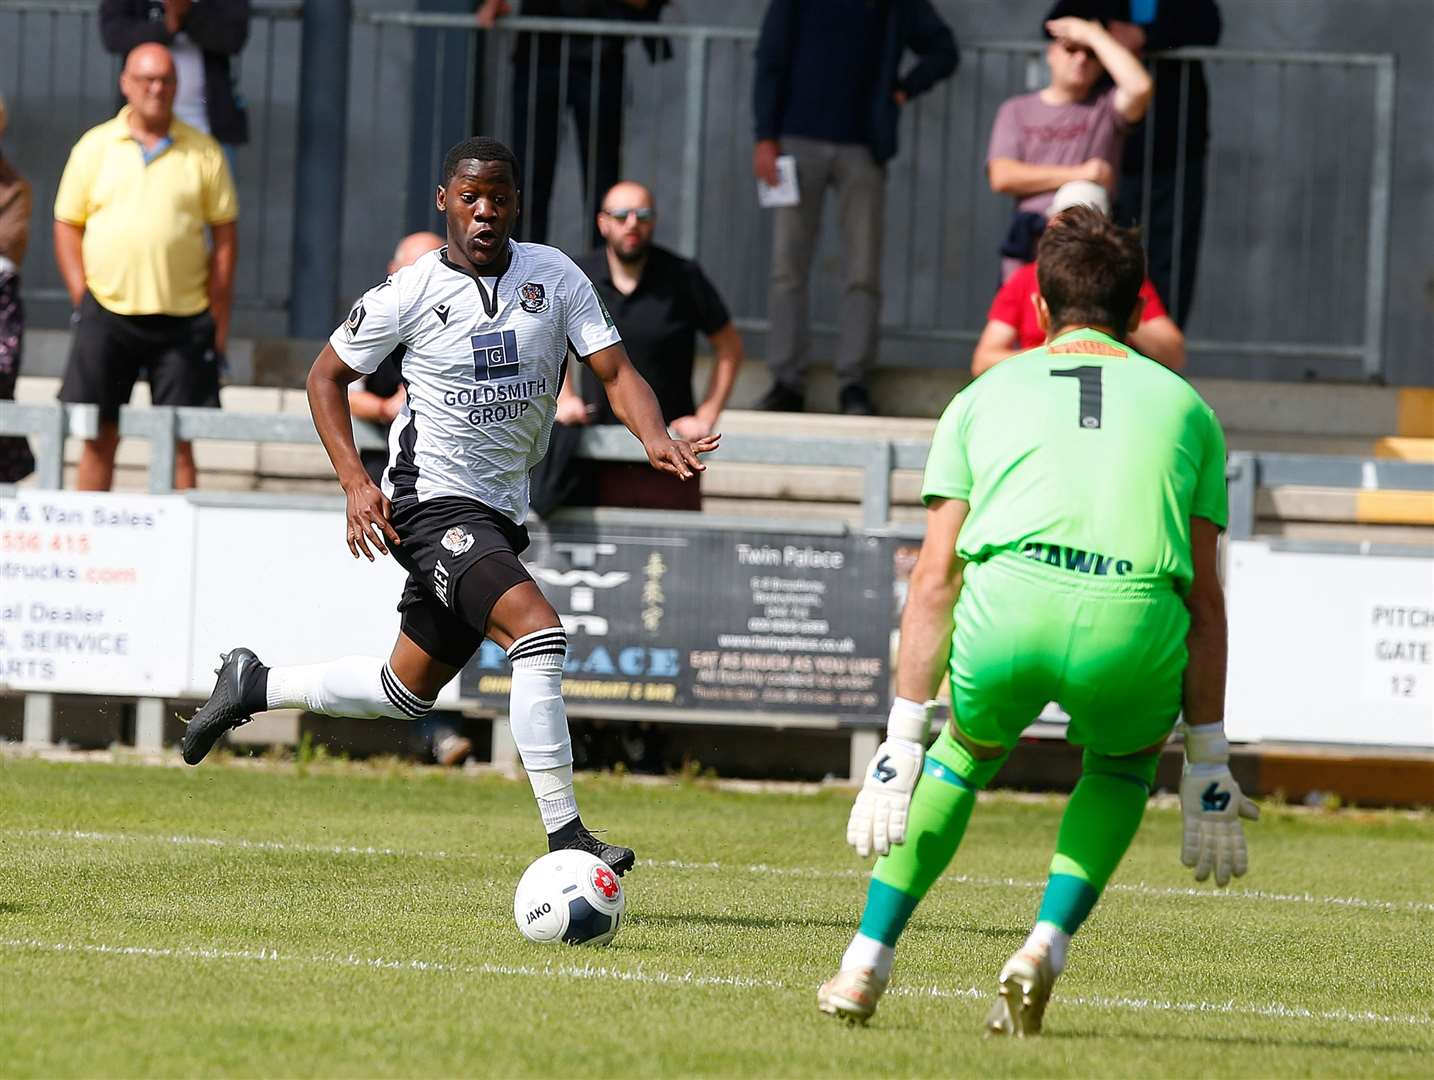 Norman Wabo goes through one-on-one with the Havant goalkeeper Picture: Andy Jones